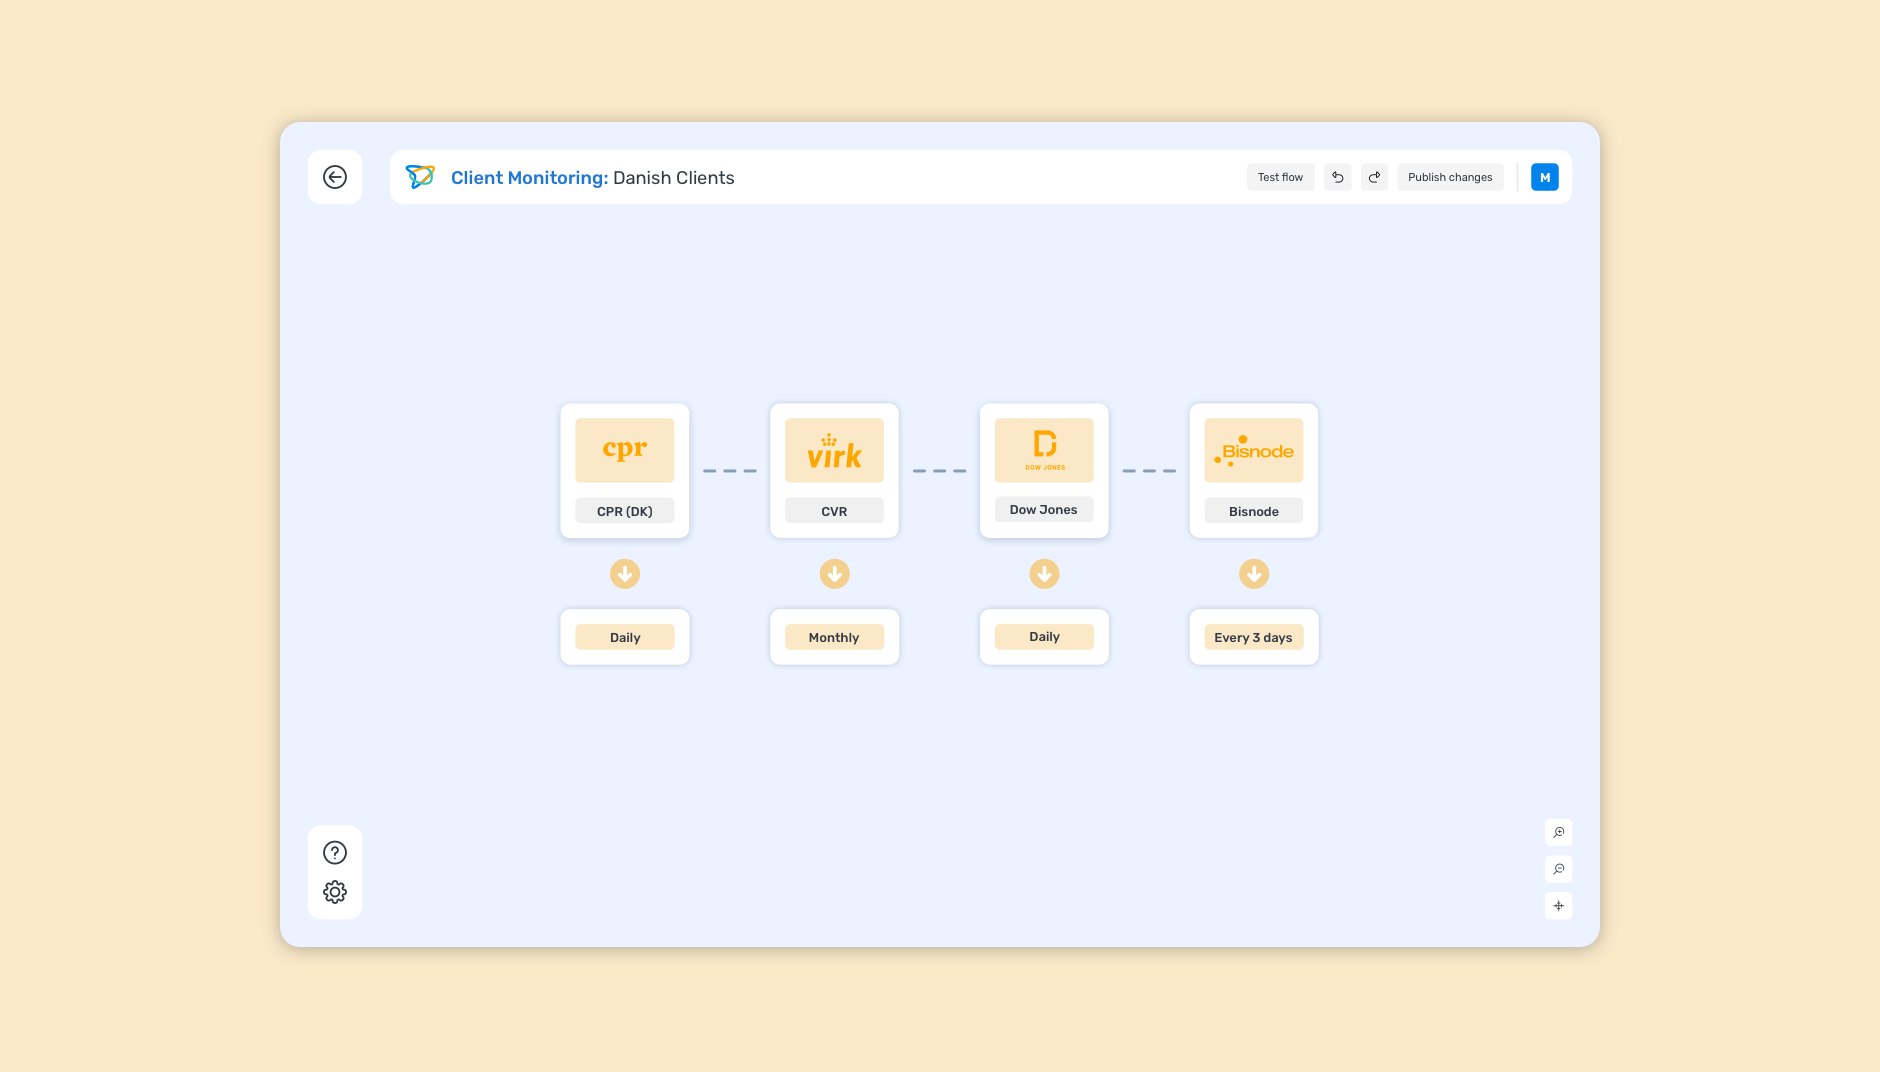 Client Monitoring overview